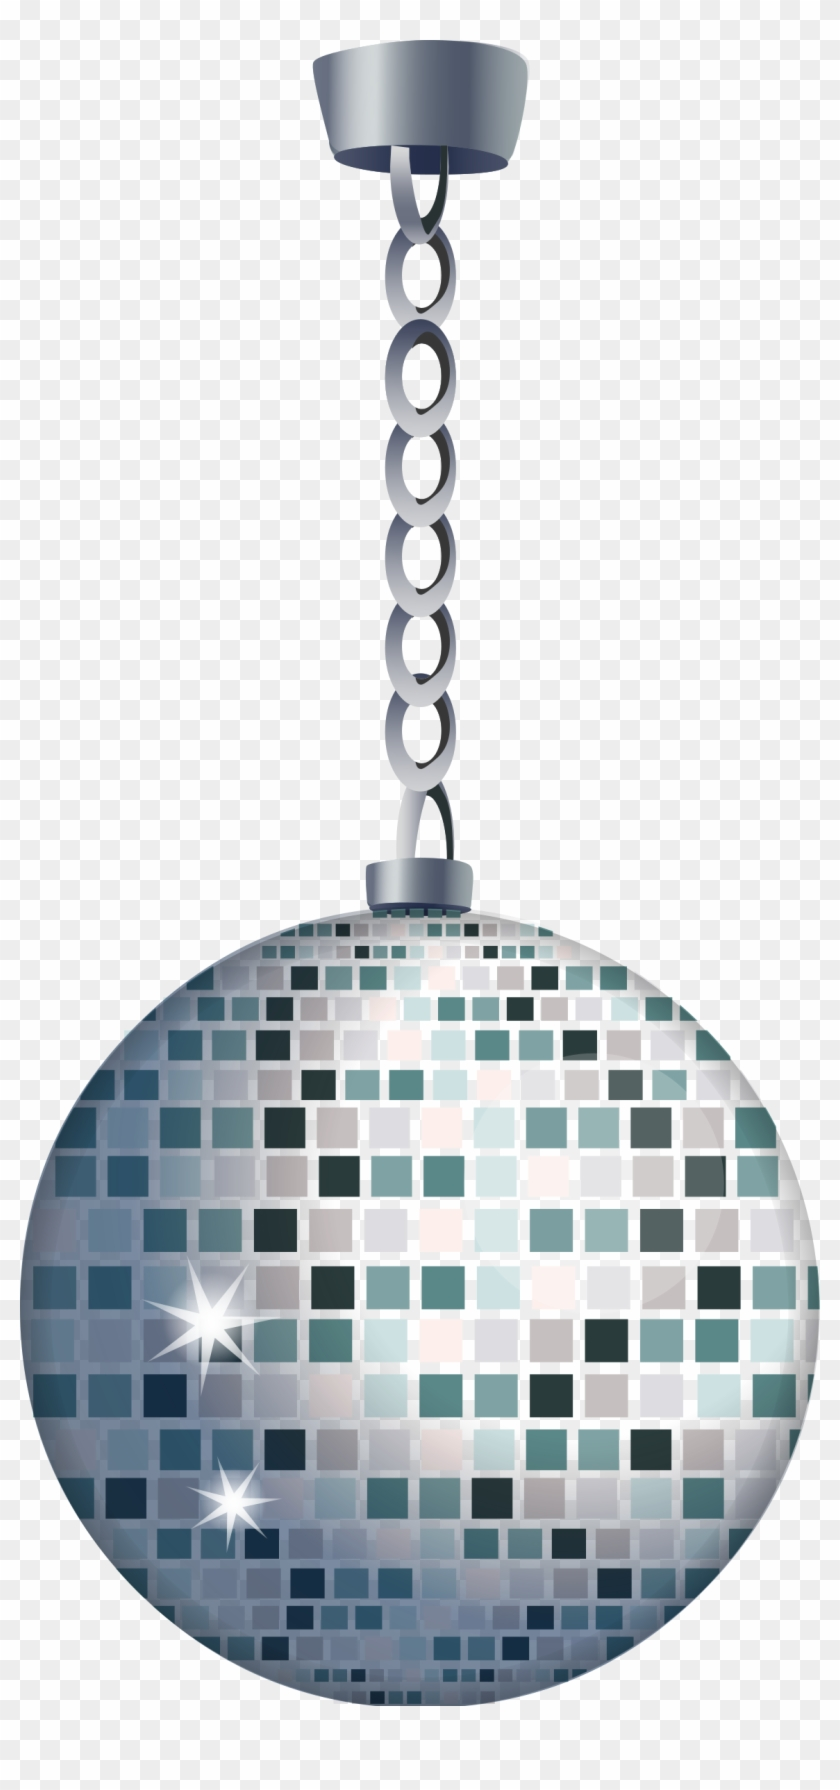 hight resolution of glitter ball from glitch by anarres disco ball clipart hd png download